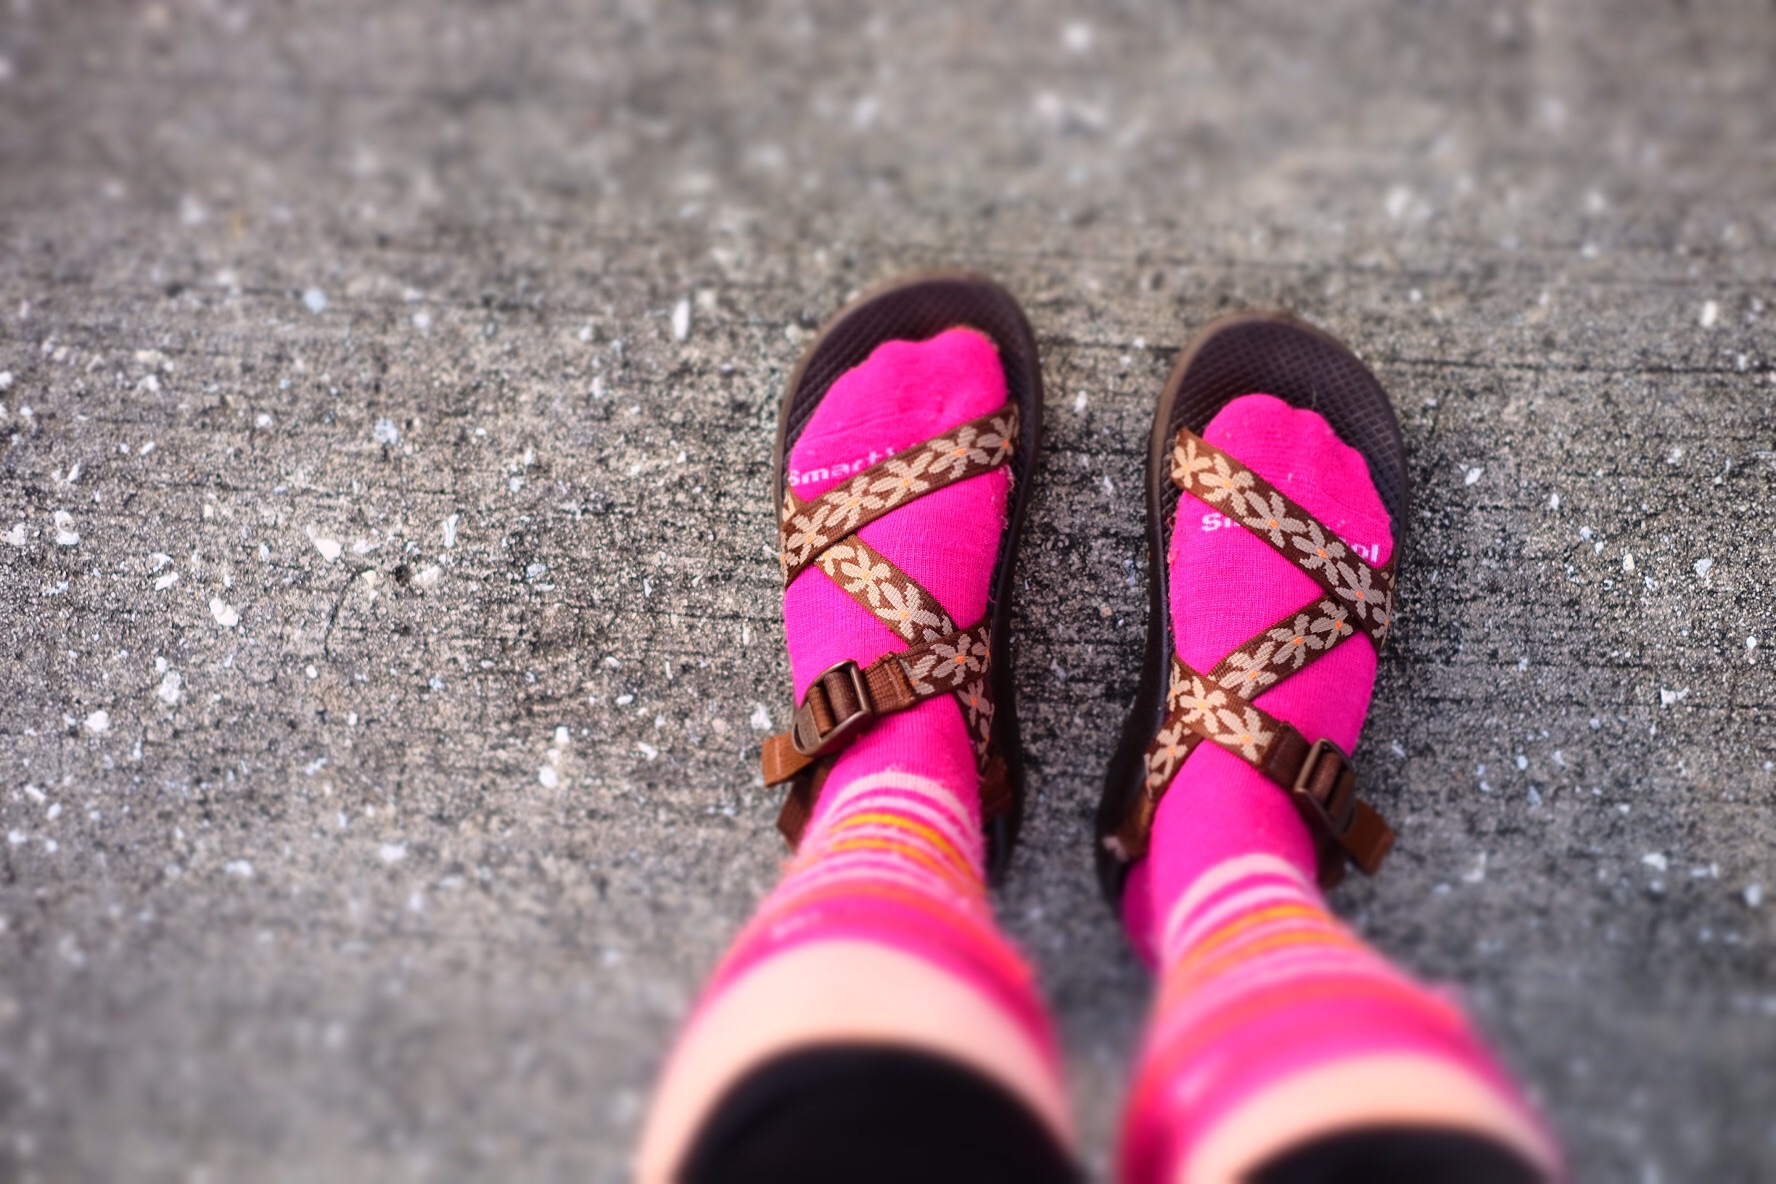 My footwear this morning as I was chilly and waiting for the big girls to shower. I think I fit in well in the community.